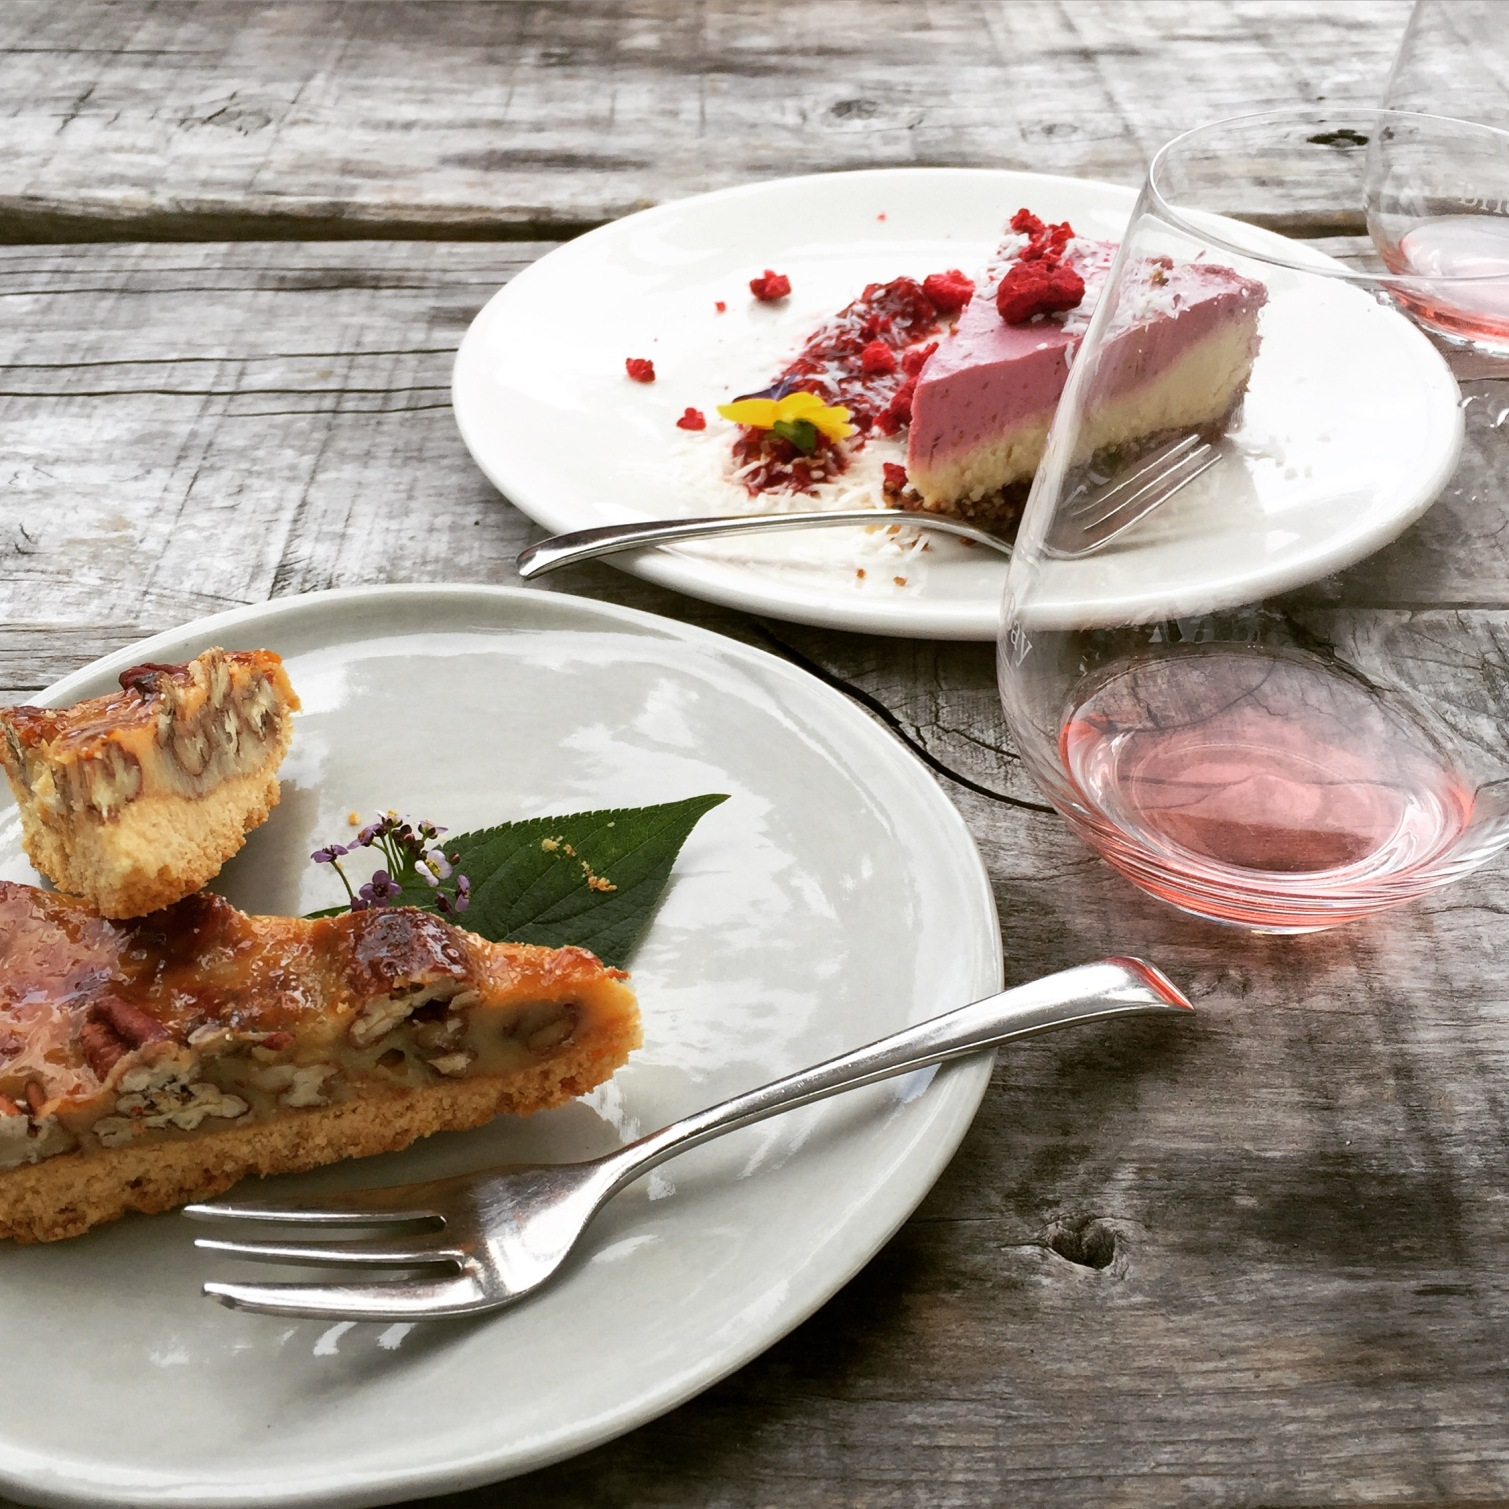 Salted caramel pecan slice or 'guilt free' raspberry, coconut & cashew cheese cake